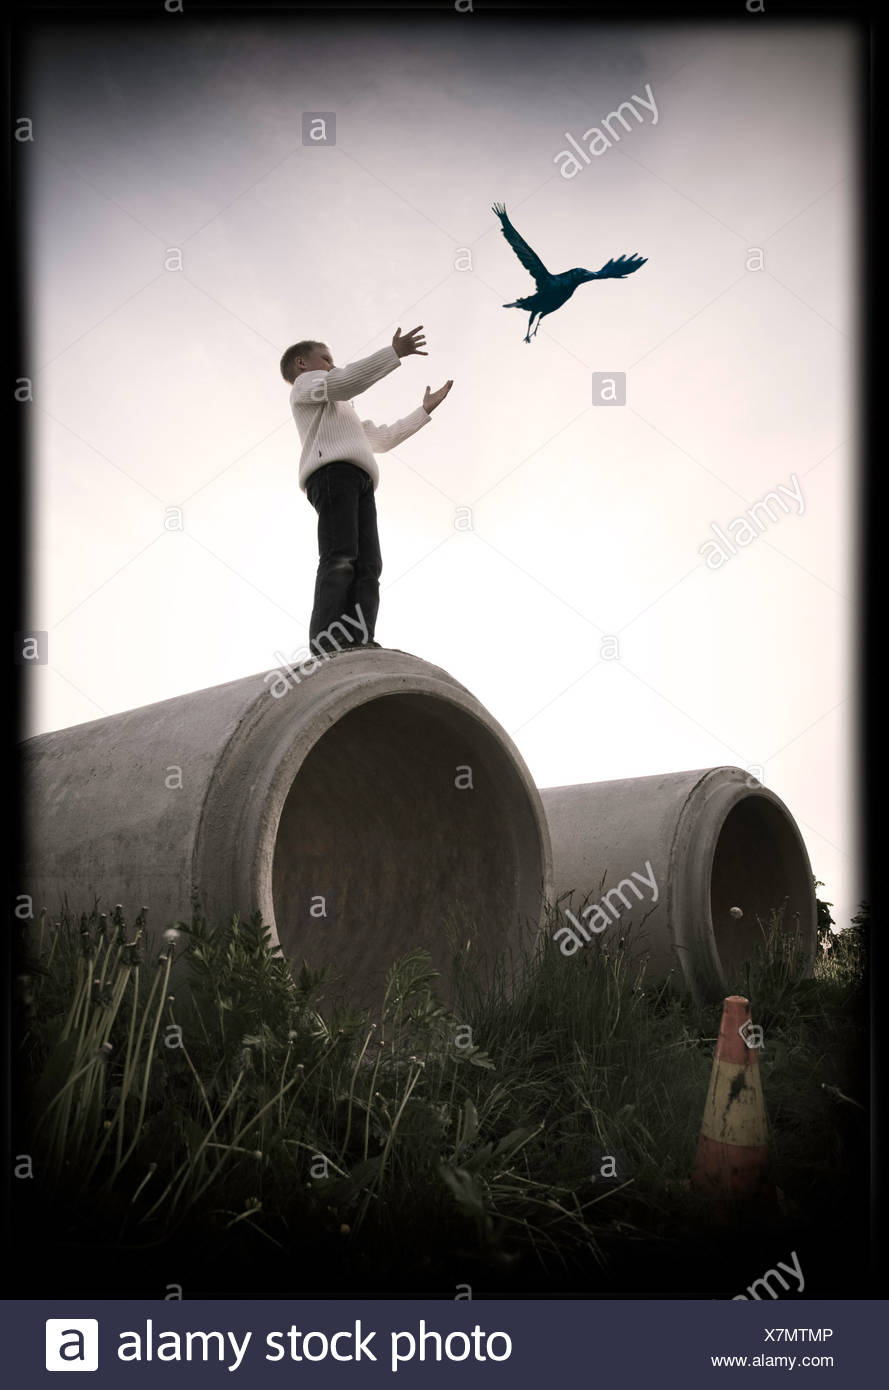 Young boy standing on large concrete drain releasing bird - Stock Image